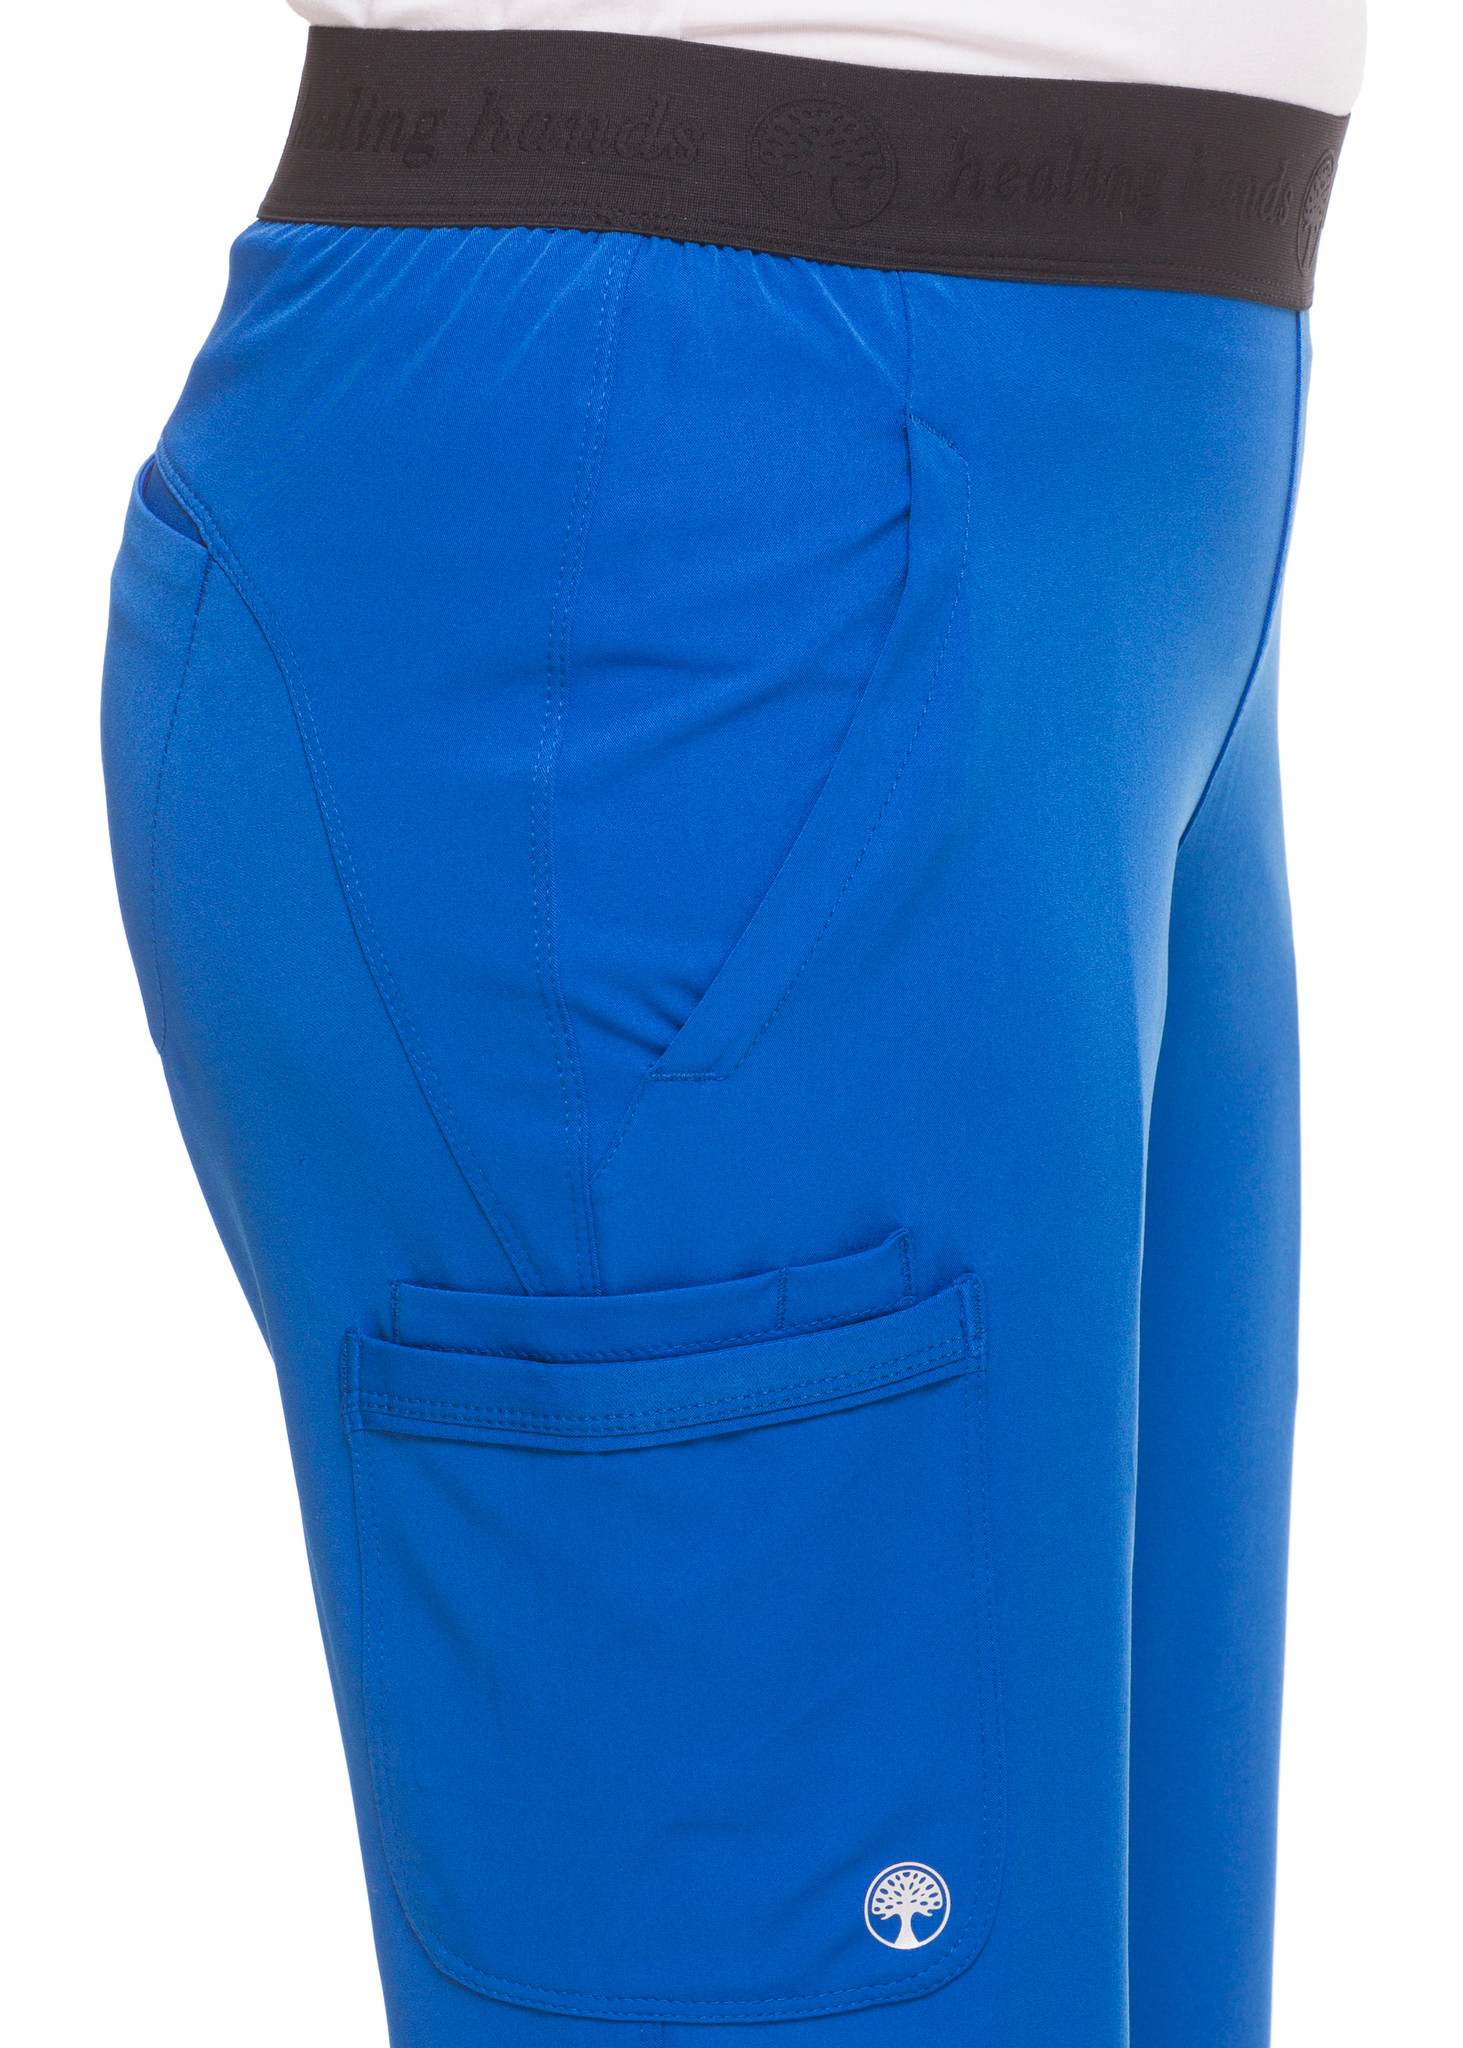 Healing Hands HH Works 9500 Rachel Women's Scrub Pant with 6 pockets including double cargo pockets and double back pockets, elastic waist, straight leg, and four way spandex stretch. Model image right detail.